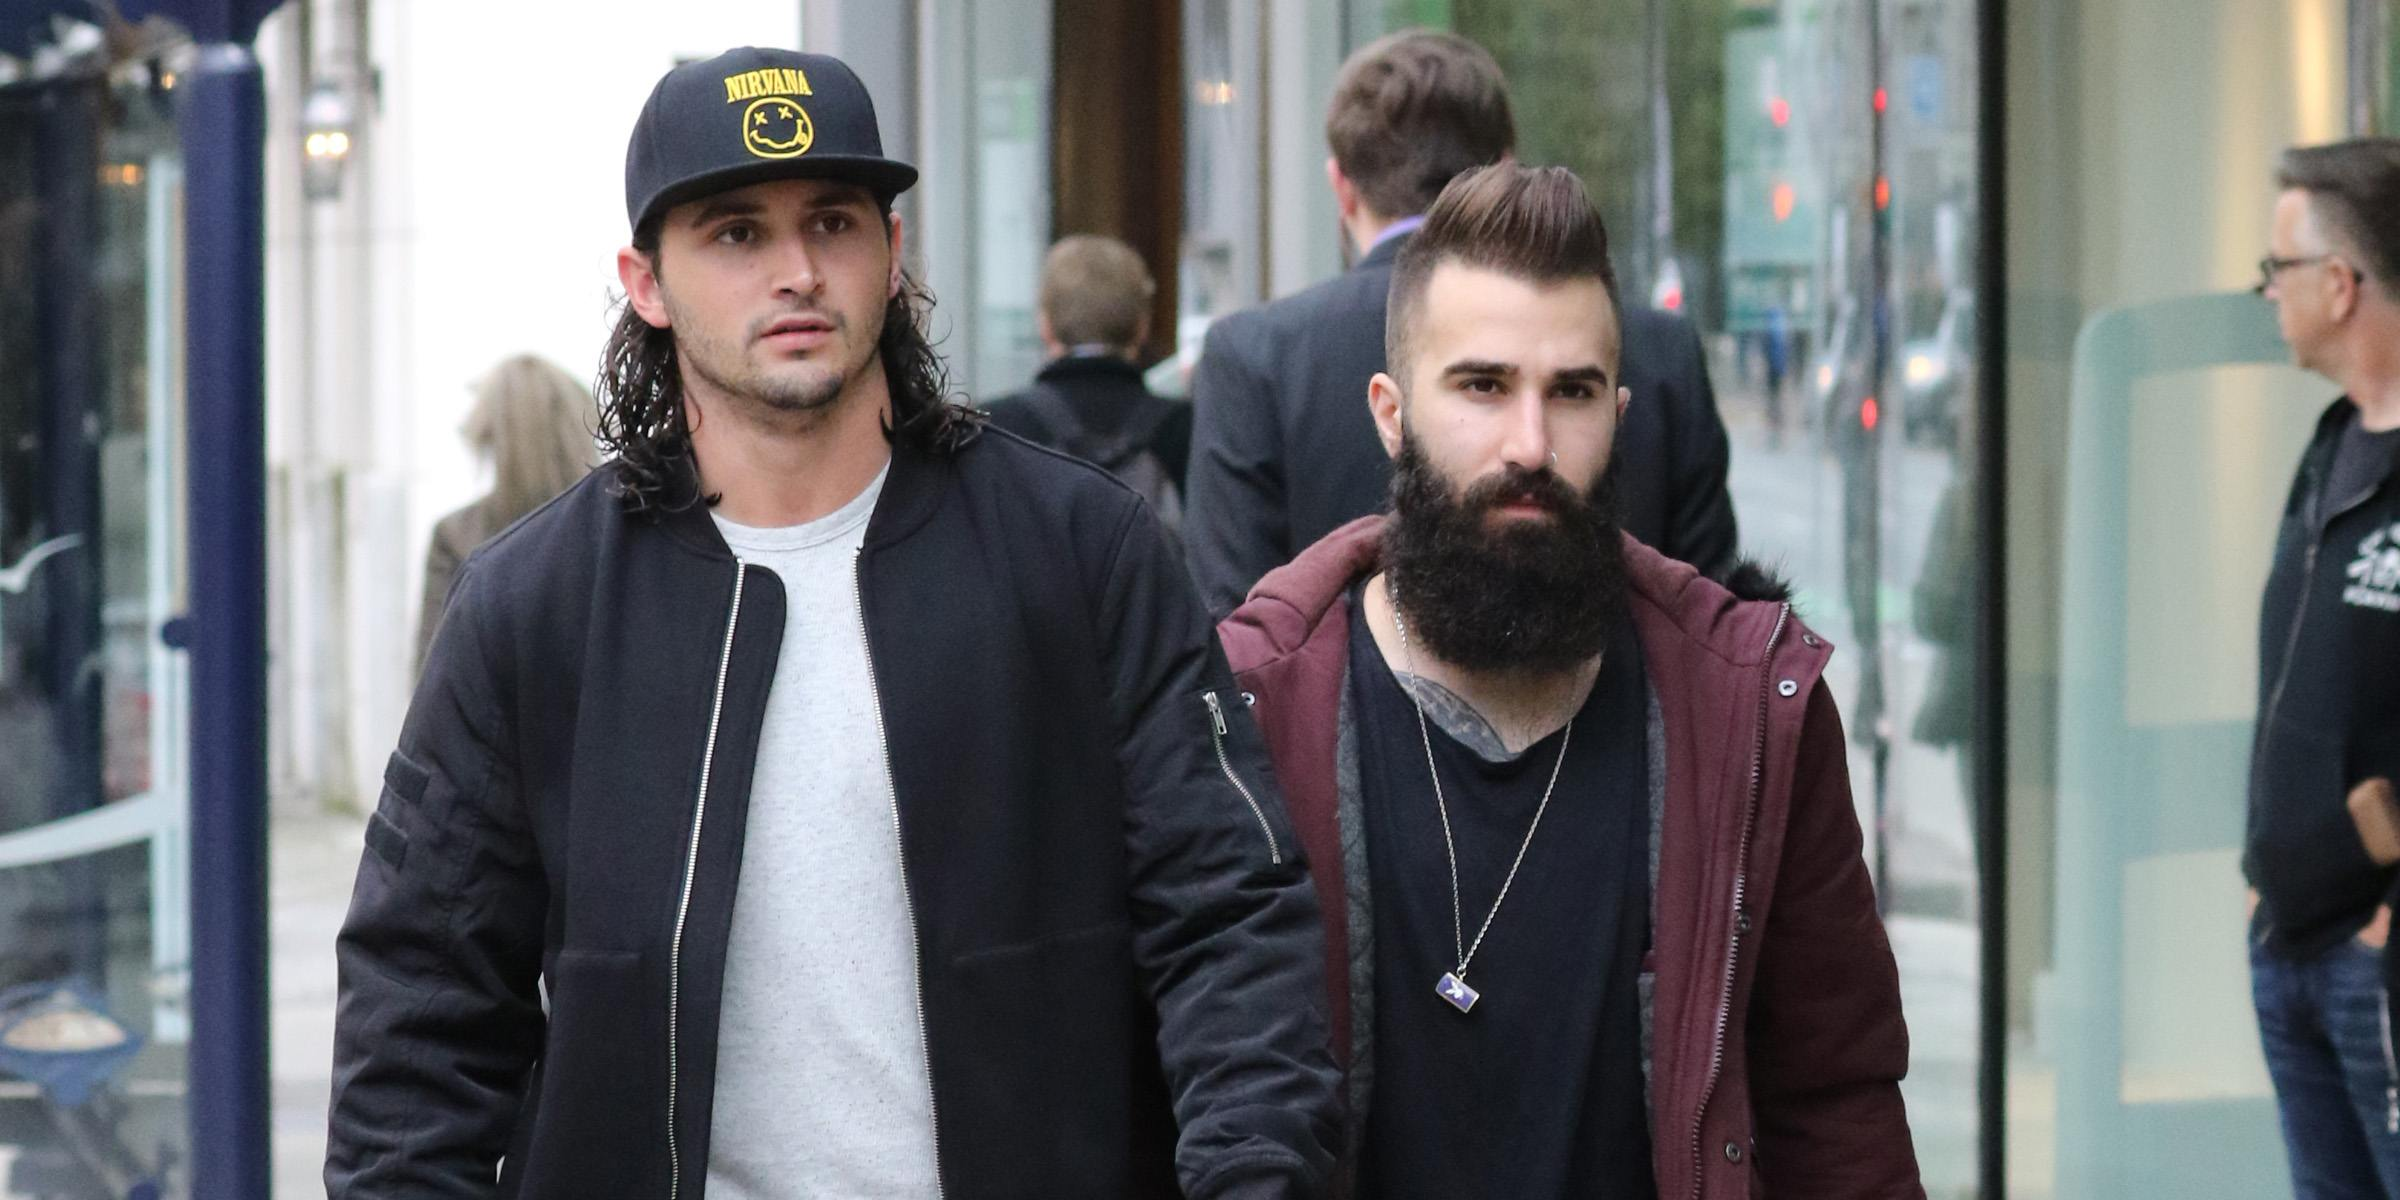 Big Brother stars Paul & Victor spotted in Vancouver (PHOTOS)